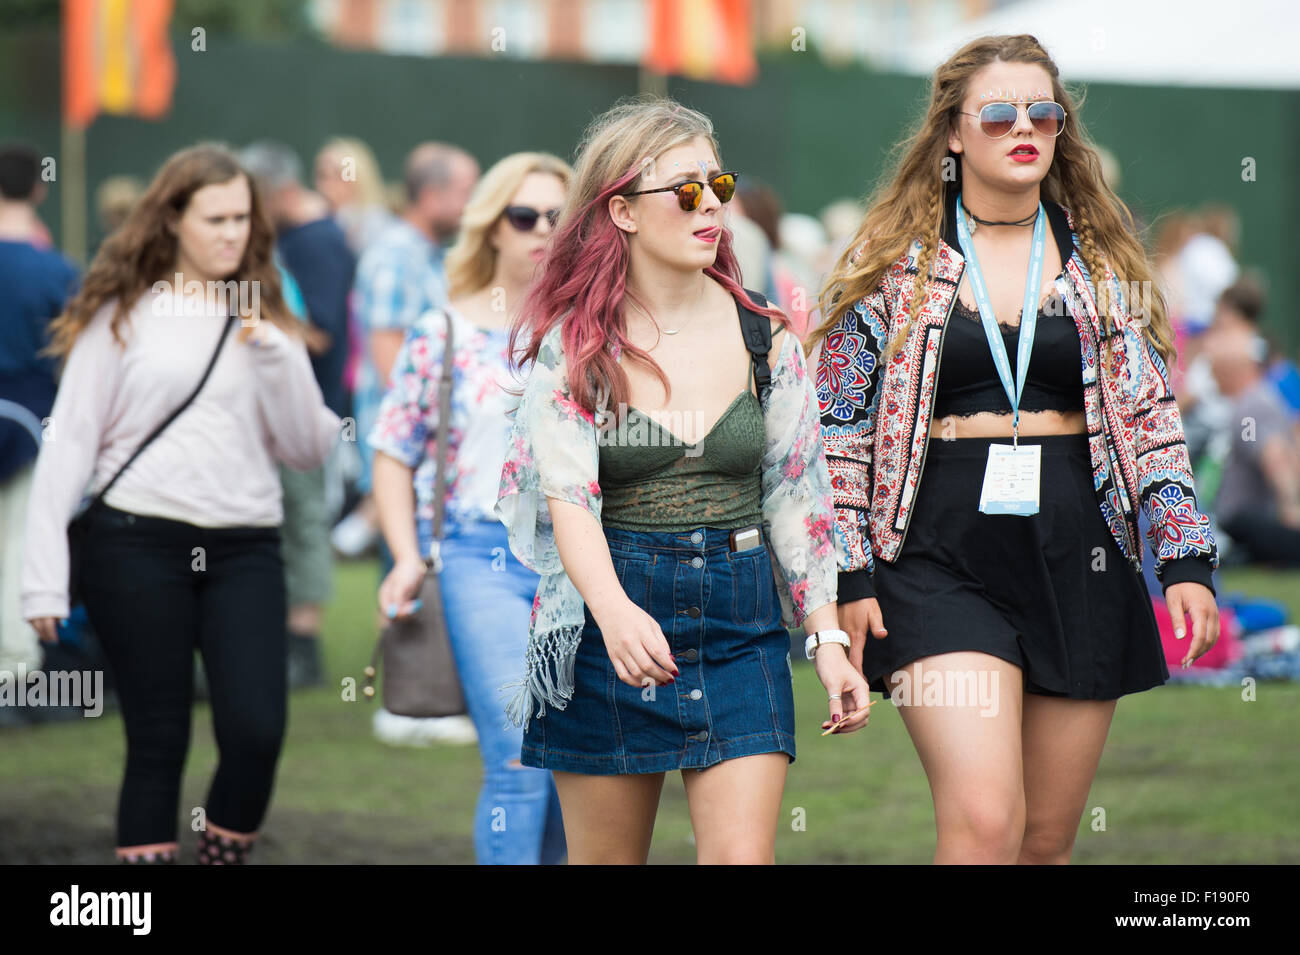 Portsmouth, UK. 30th August 2015. Victorious Festival - Sunday. Warm sunny weather sees festival goers switch ponchos Stock Photo